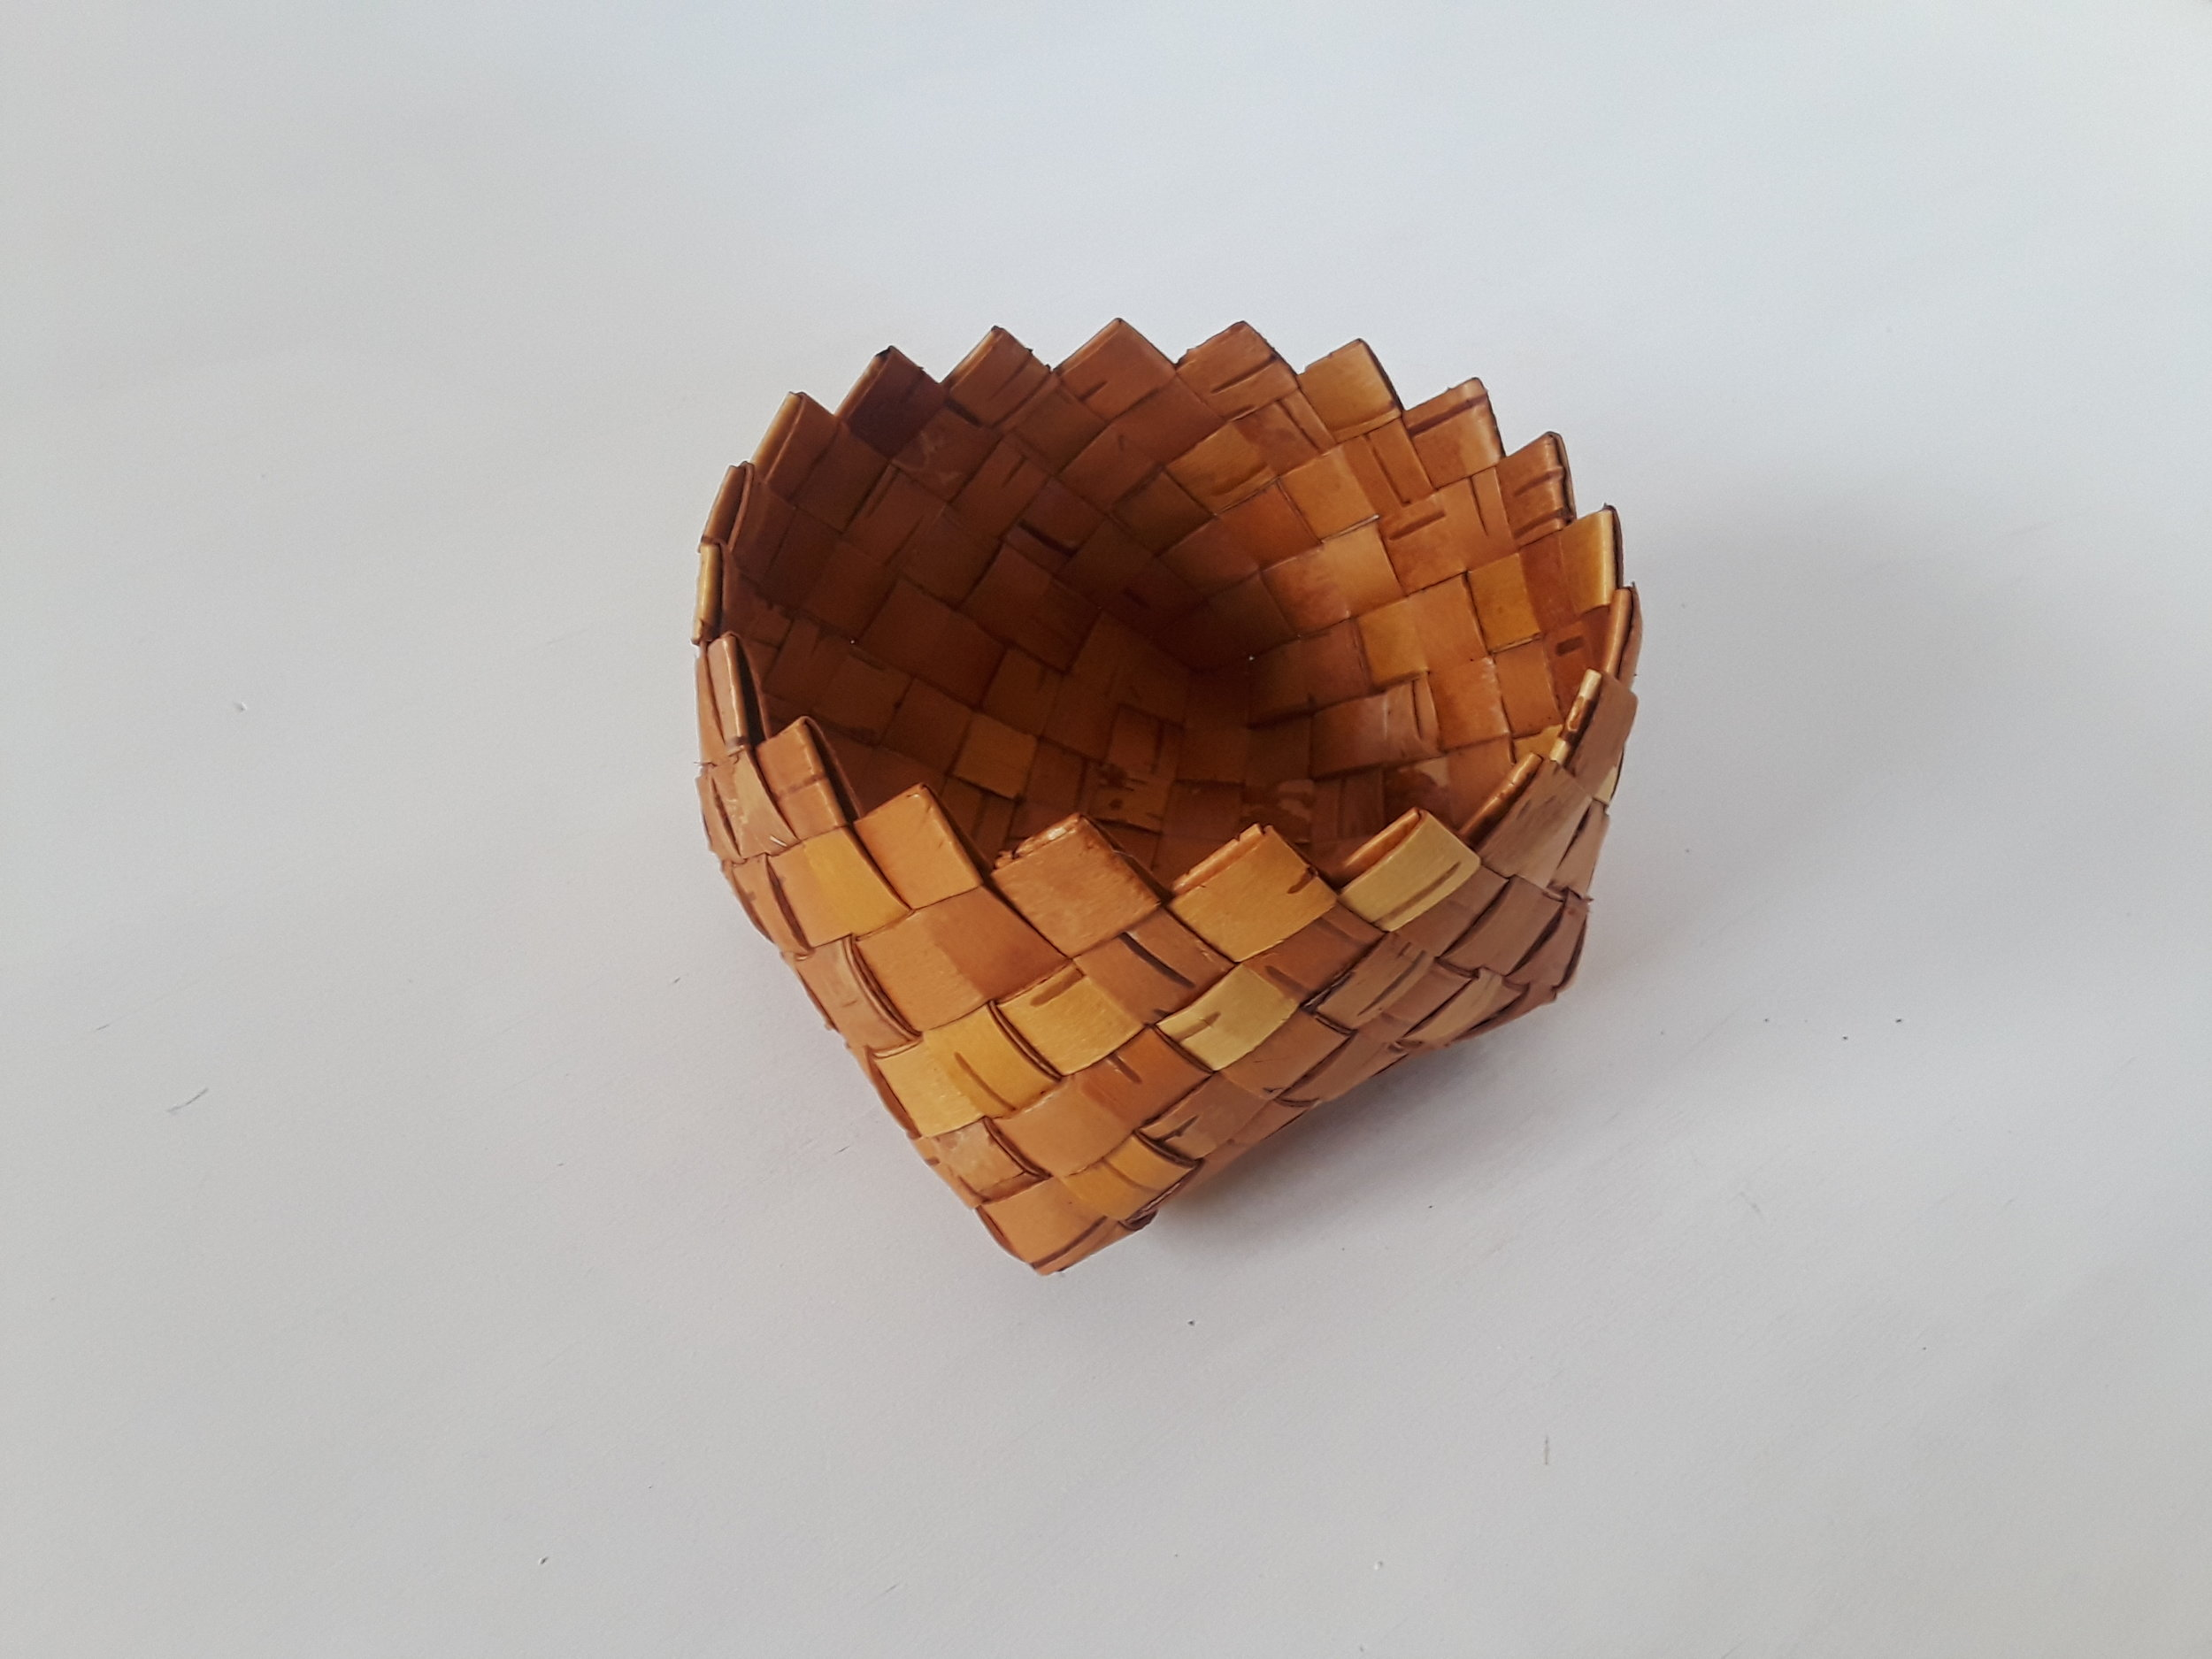 Weaving A Birch Bark Basket - April 20, 2019Come join us at the Missoula Lifelong Learning Center for a day of birch bark basket weaving.